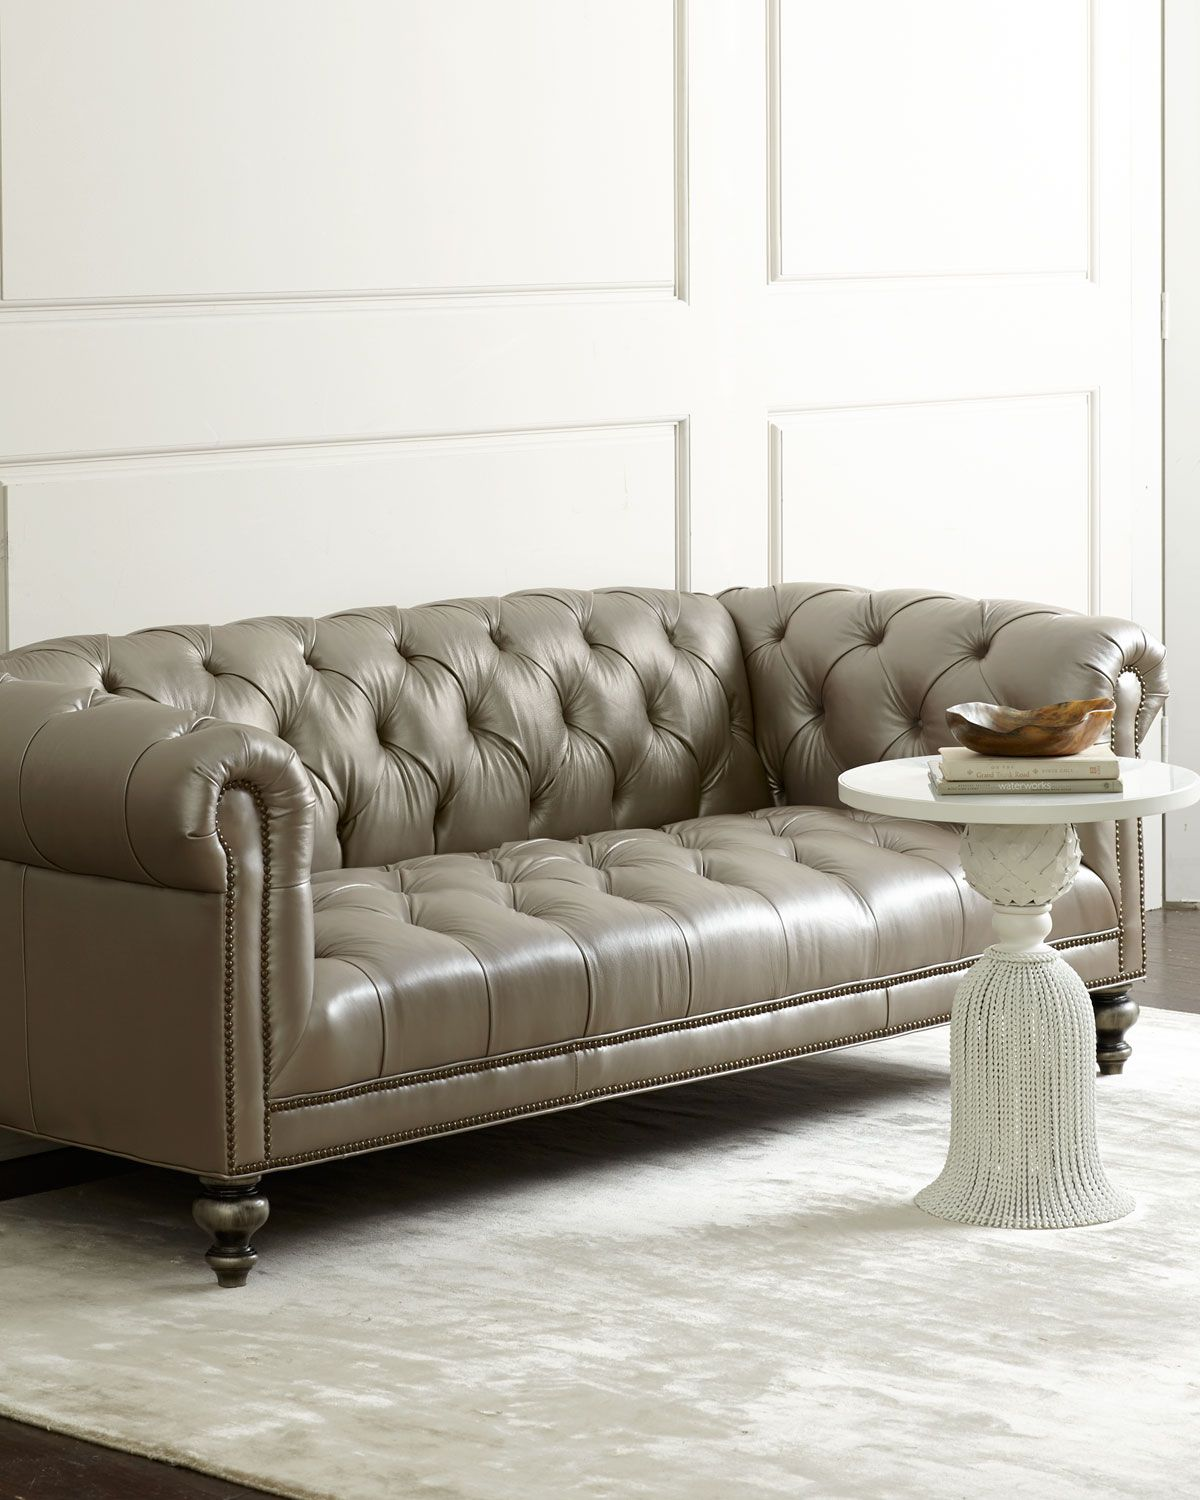 Old Hickory Tannery Lenoir Yellow Sofa: Morgan Gray Tufted Leather Sofa, Grey